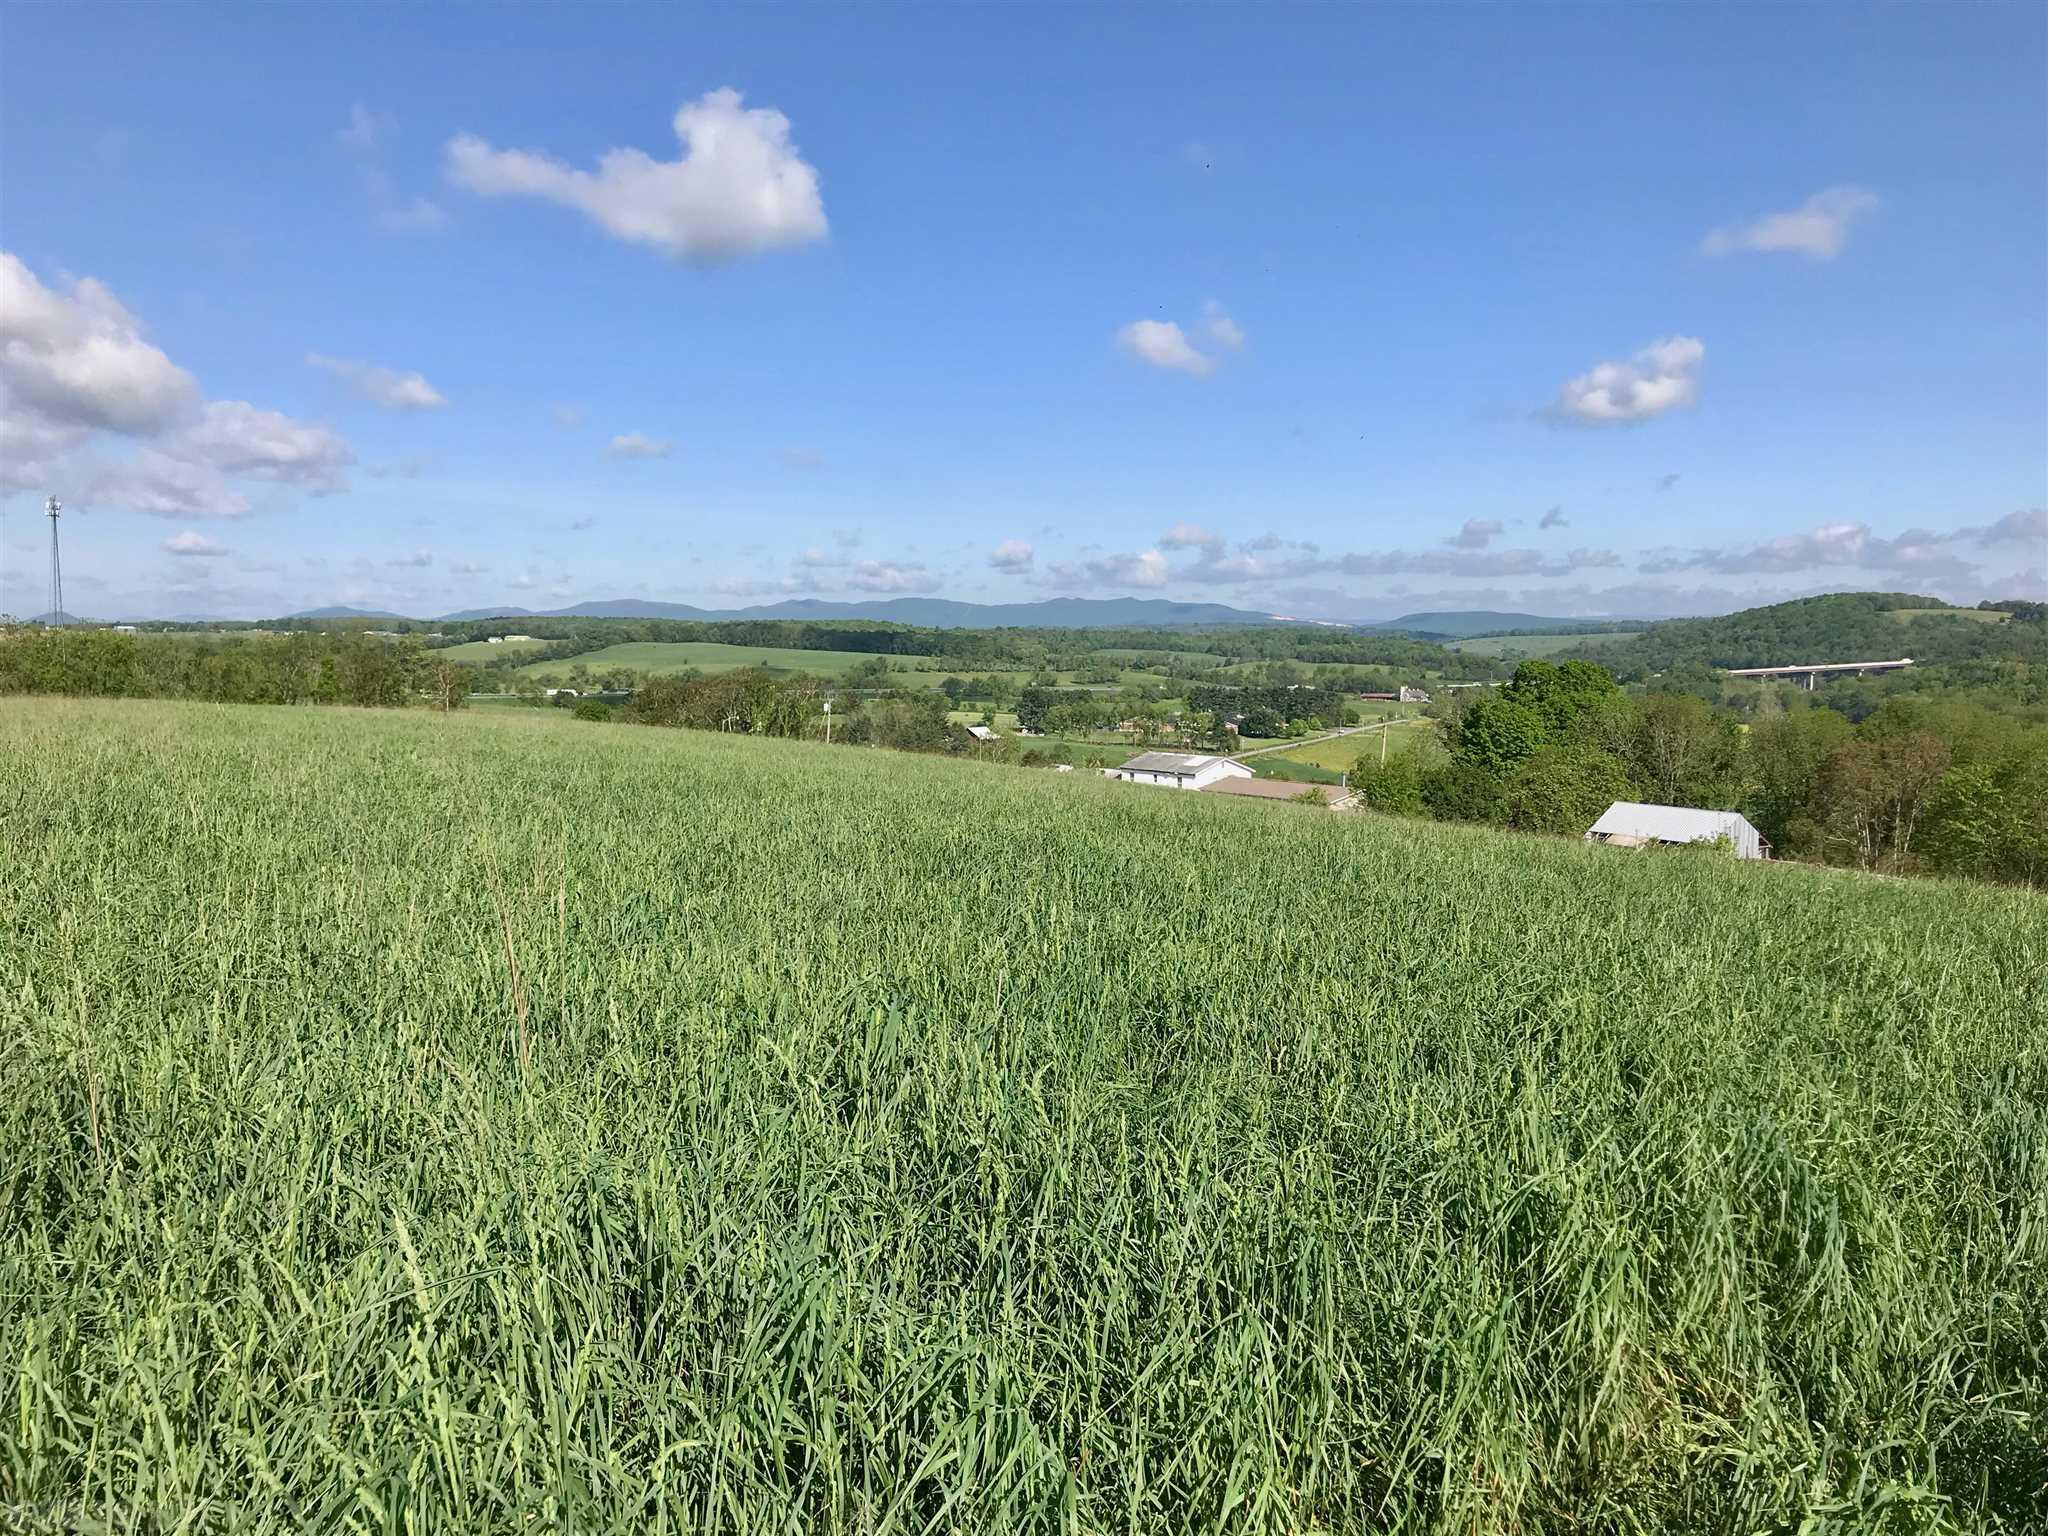 Establish your new farm on the top of this hill that provides views for miles. This blank-slate acreage is everything you have been looking for: lush, open pasture, long-range mountain views, close proximity to the interstate, the New River, the New River Trail, and all the other amenities that living in Wythe County provides. Locate your house at the peak and enjoy commanding, 360-degree views of your new property. There's plenty of room for your horses and other livestock. When the day is done, head down to the New River and the Trail for some hiking and fishing or simply sit back on your front porch and rock in your chair to the sounds of the country. The long road frontage also provides an opportunity to sub-divide the acreage to expand the housing or farming options available to the new owner. Take a look at the photos and schedule your appointment today.